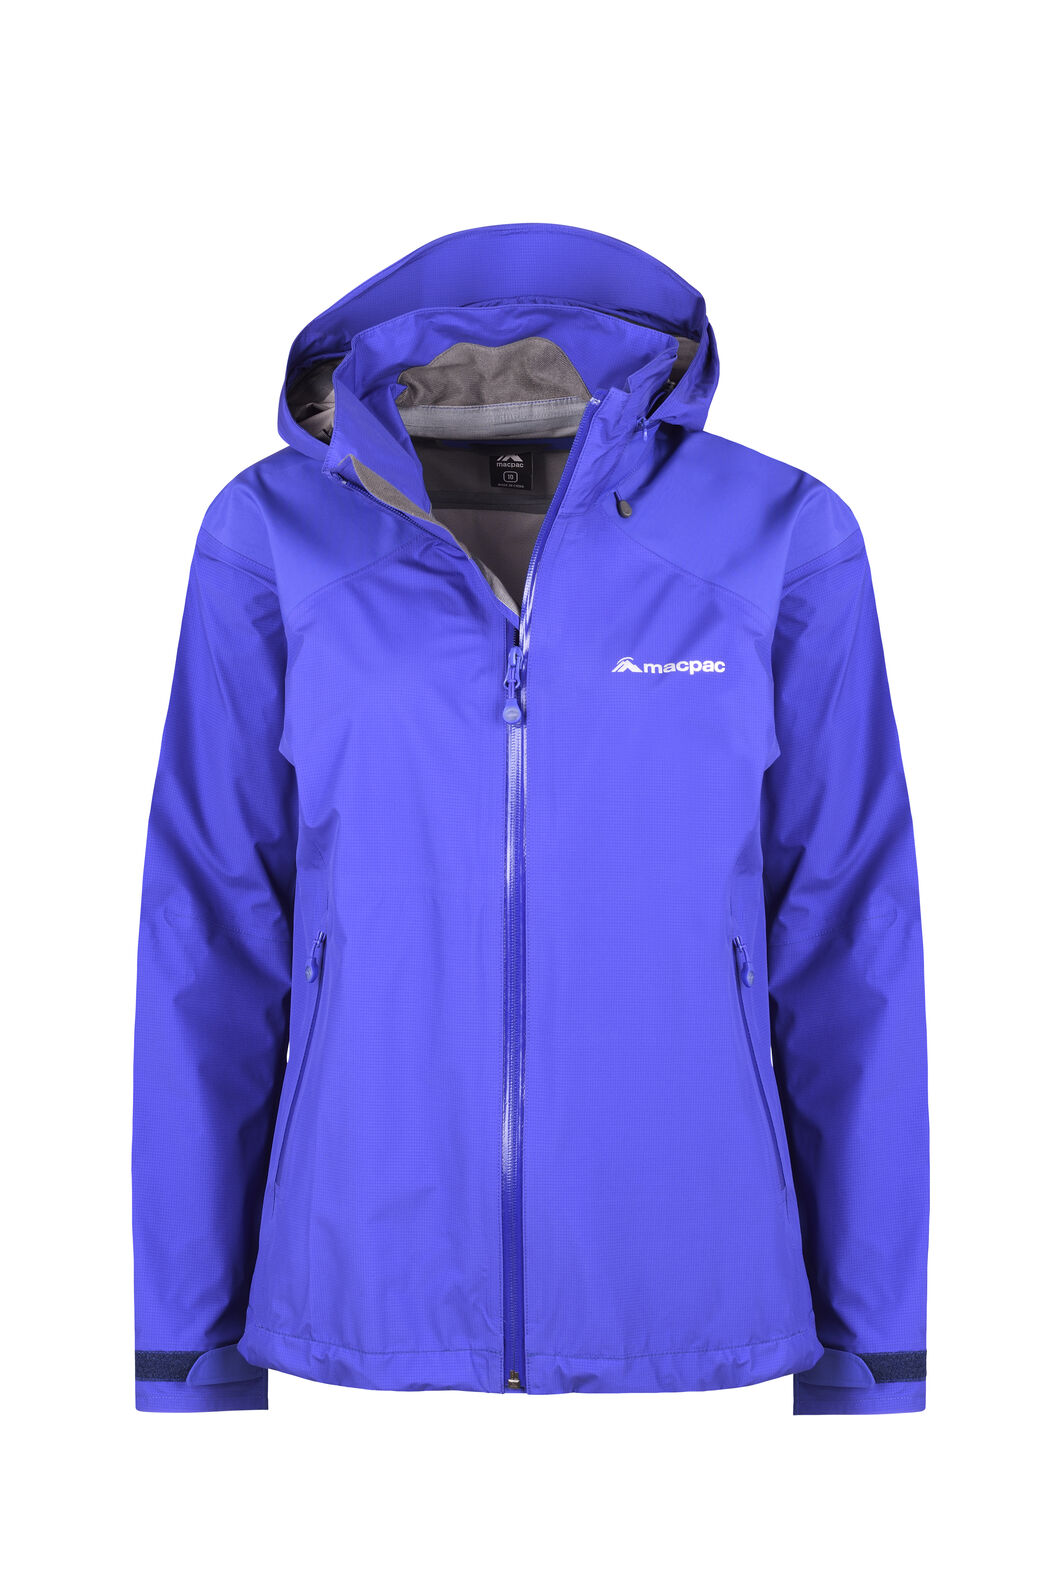 Macpac Traverse Pertex® Rain Jacket - Women's, Clematis Blue, hi-res